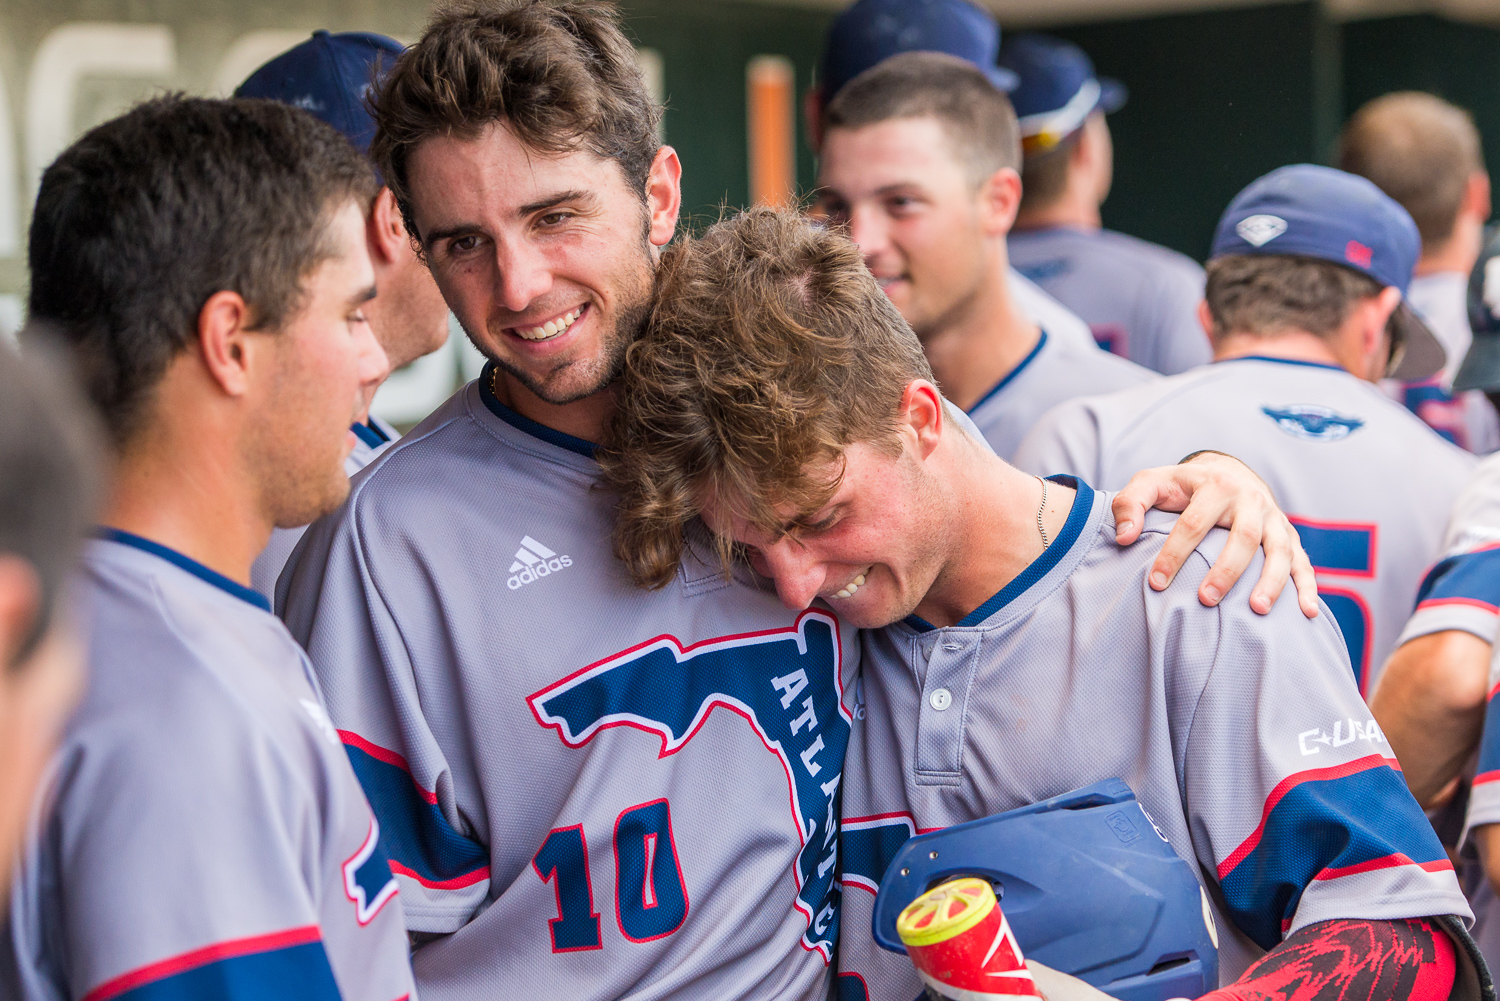 CJ Chatham (10) embraces Tyler Frank following Frank's first ever collegiate home run in last year's NCAA Miami regional. Photo by Max Jackson